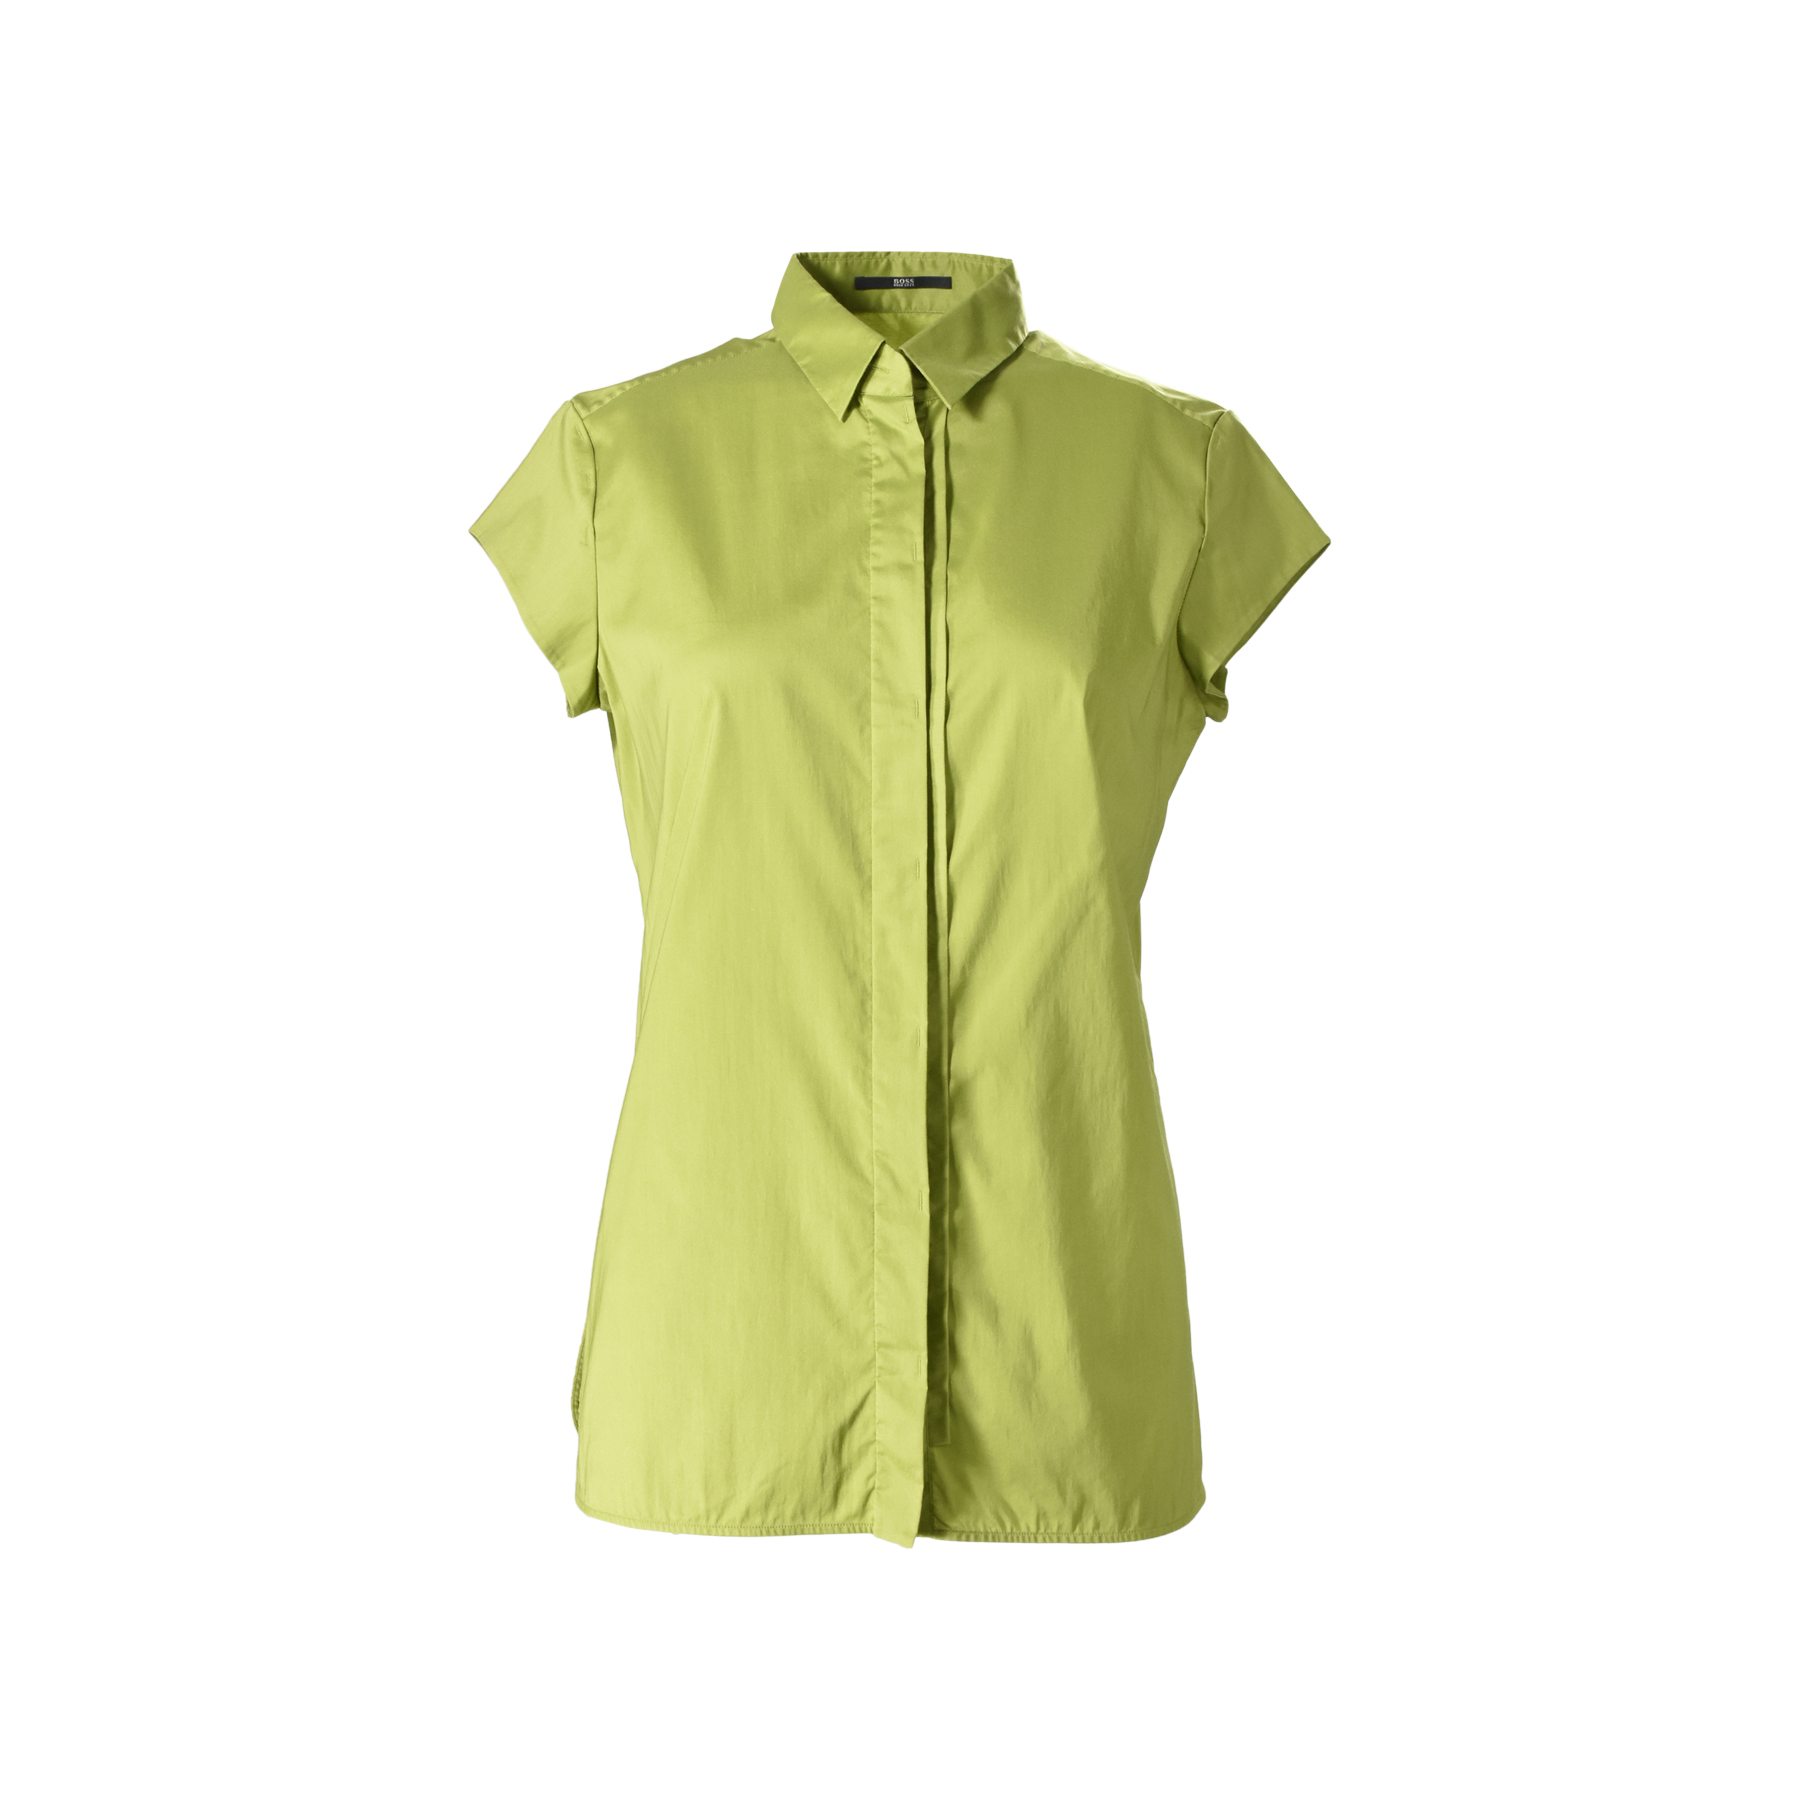 2b133e997 Authentic Second Hand Hugo Boss Short-sleeve Button-Down Shirt  (PSS-388-00044) - THE FIFTH COLLECTION